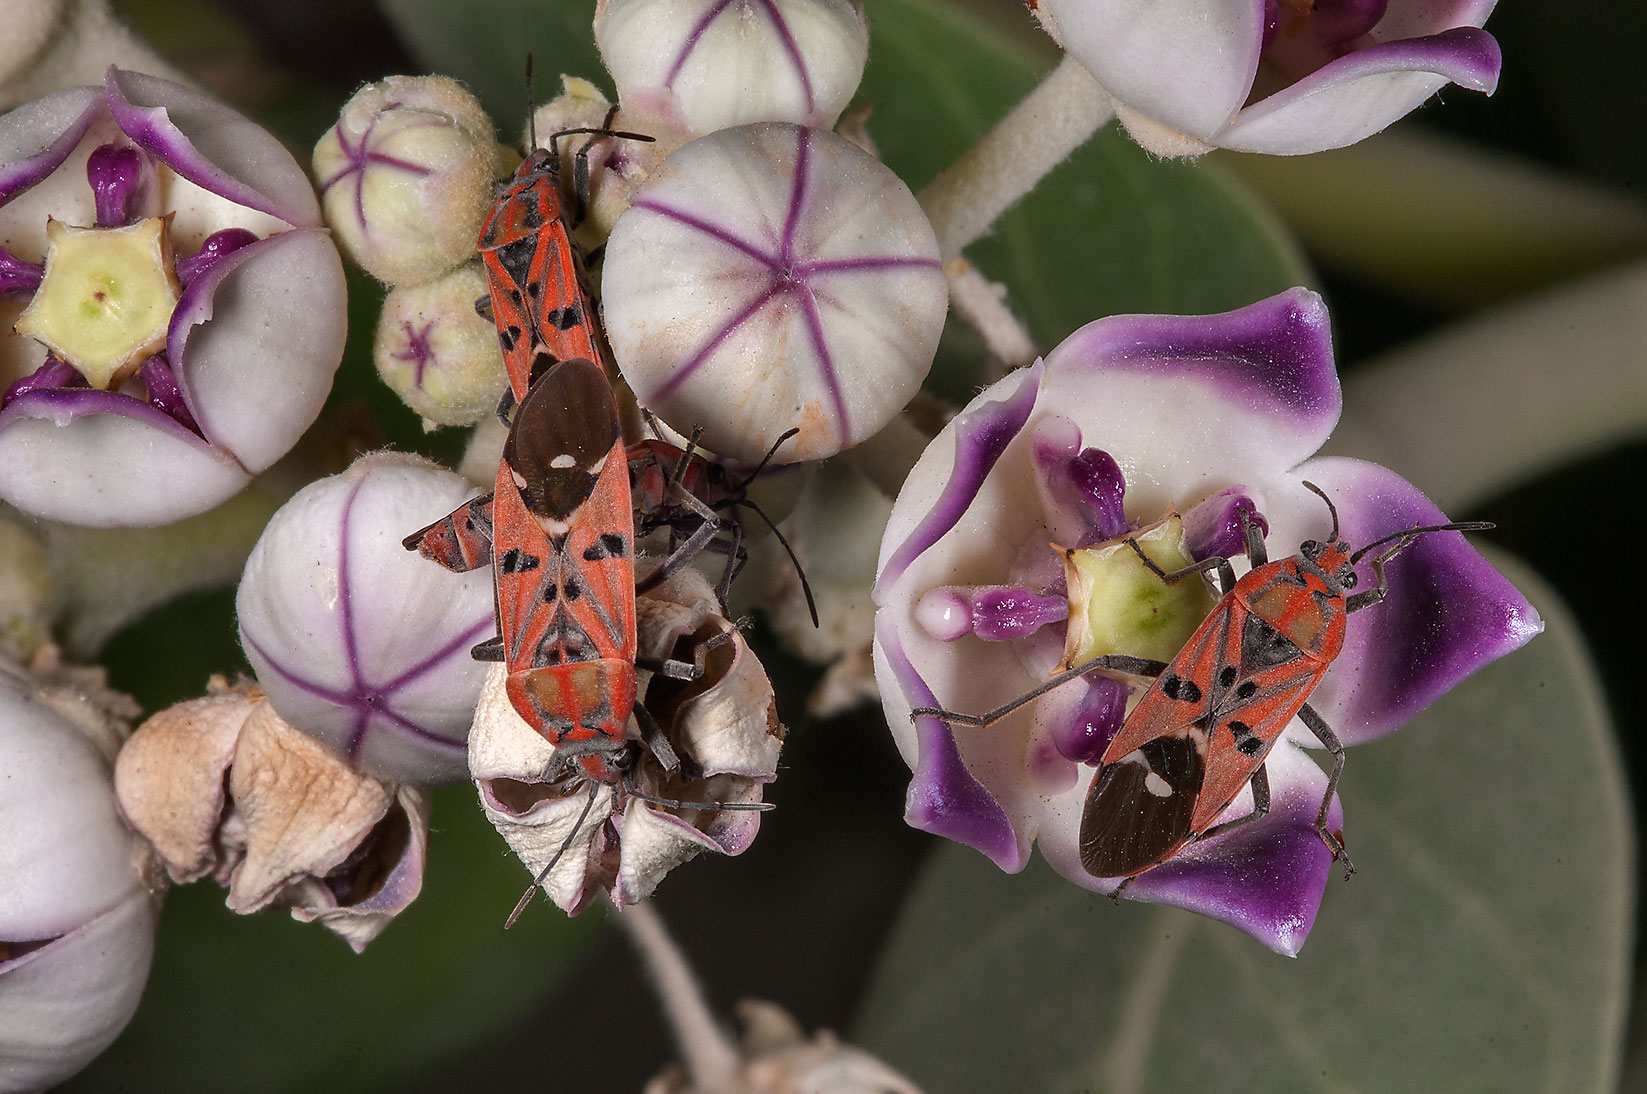 Milkweed bugs on flowers of Sodom Apple...Haloul St. in Abu Hamour. Doha, Qatar